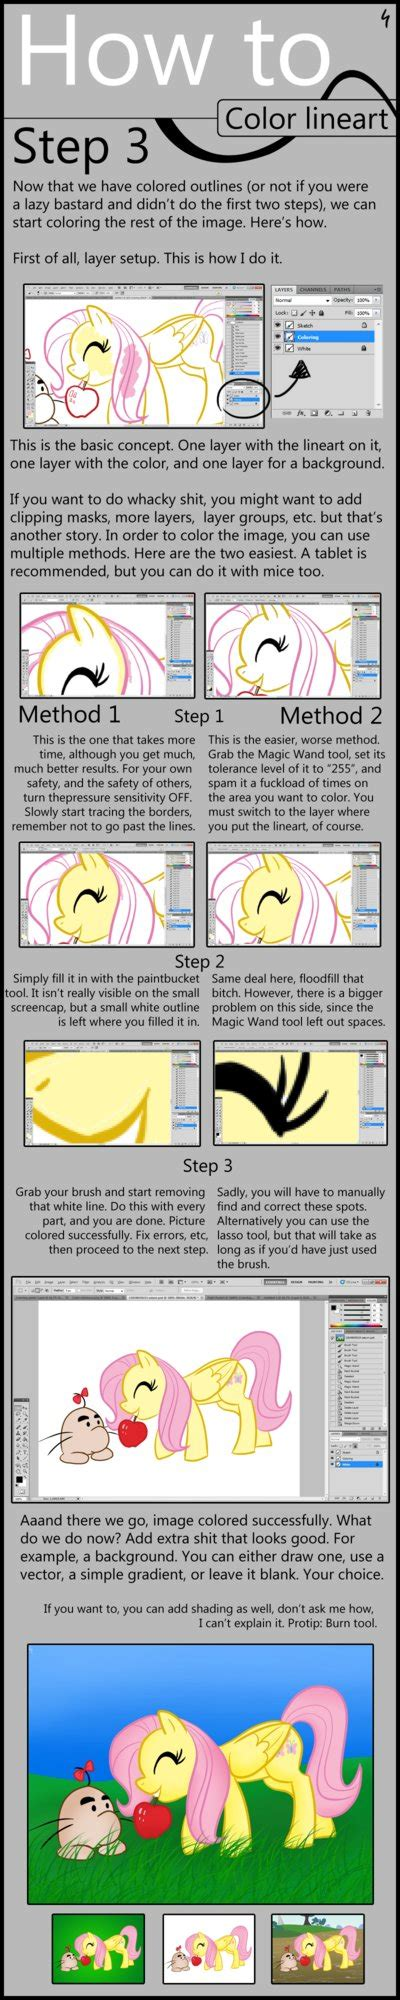 tutorial coloring photoshop cs3 photoshop coloring tutorial 2 by apple 707 on deviantart